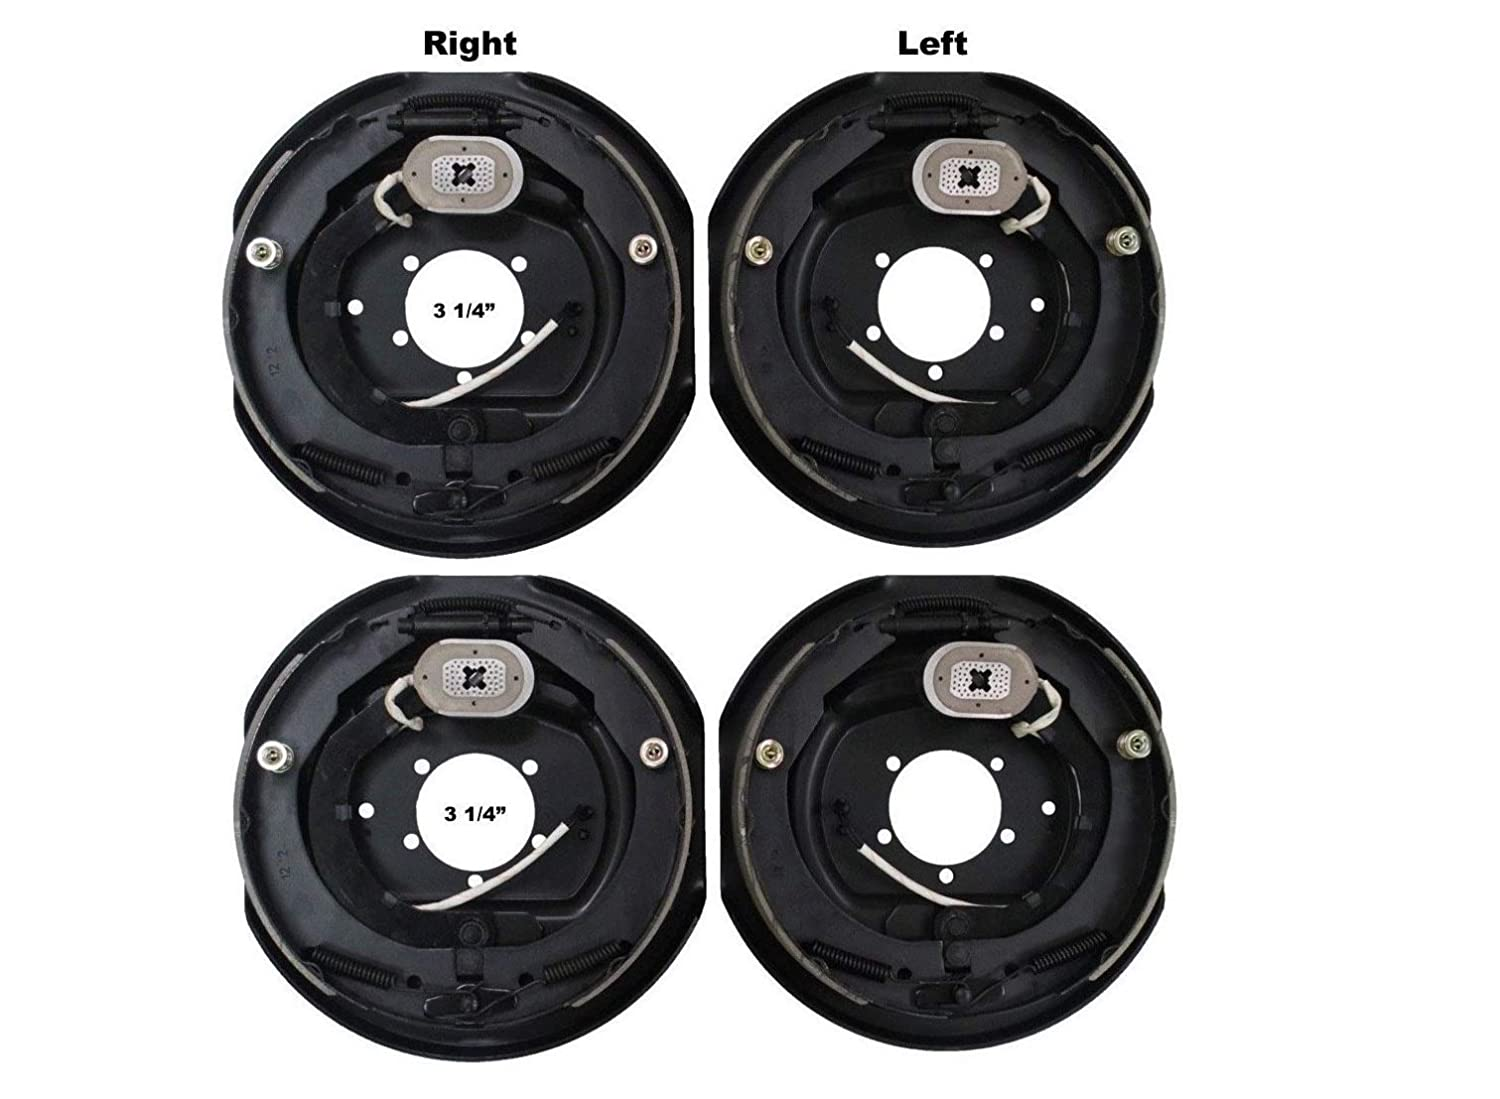 2 Sets 12x2 Electric Trailer Brake Assembly for 7000 lb Axle Trailers 12x2